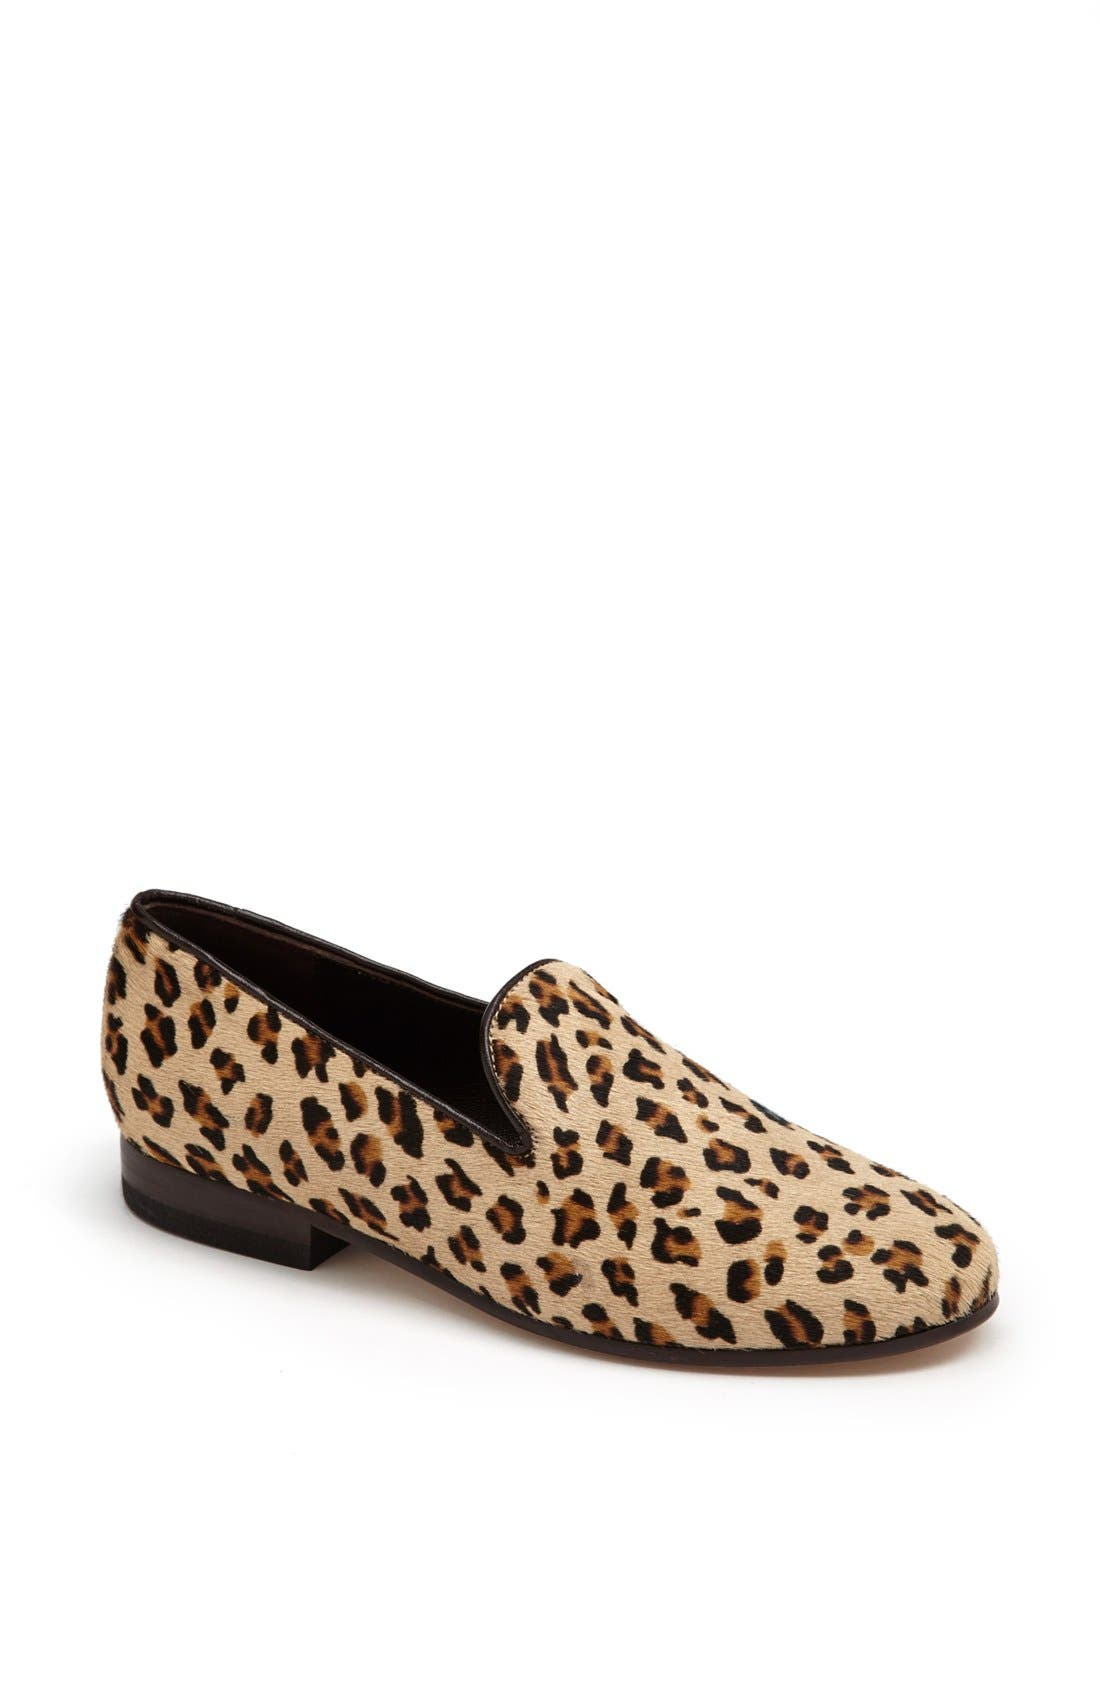 Main Image - CB Made in Italy Leopard Print Slipper Flat